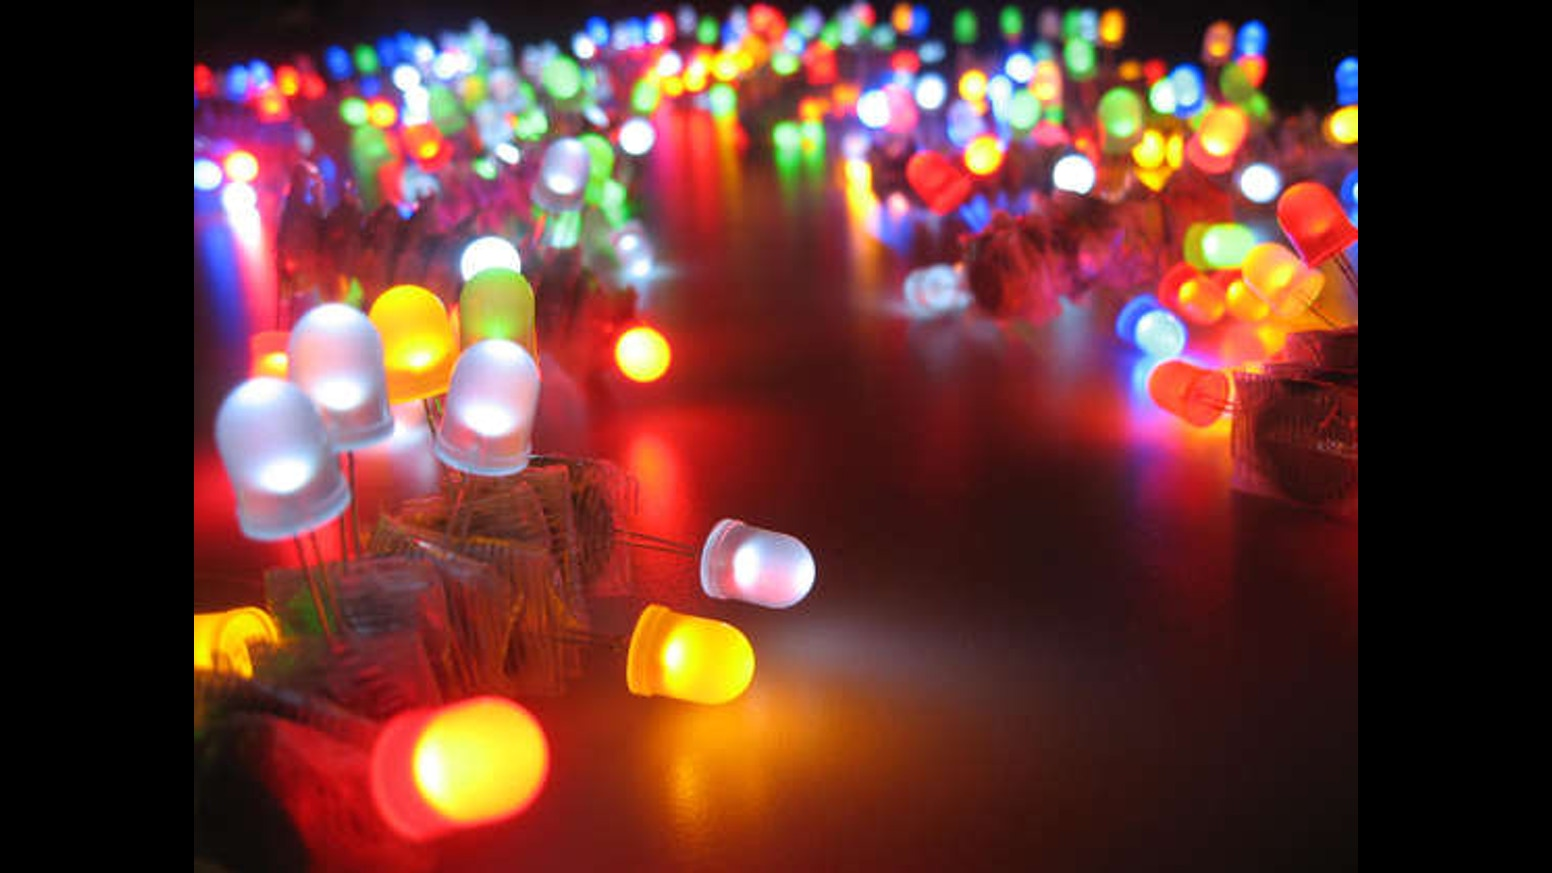 Led night light kickstarter - Illuminate A Site Specific Art Installation Will Showcase Thousands Of Led Lights Attached To Messages From The Detroit Community